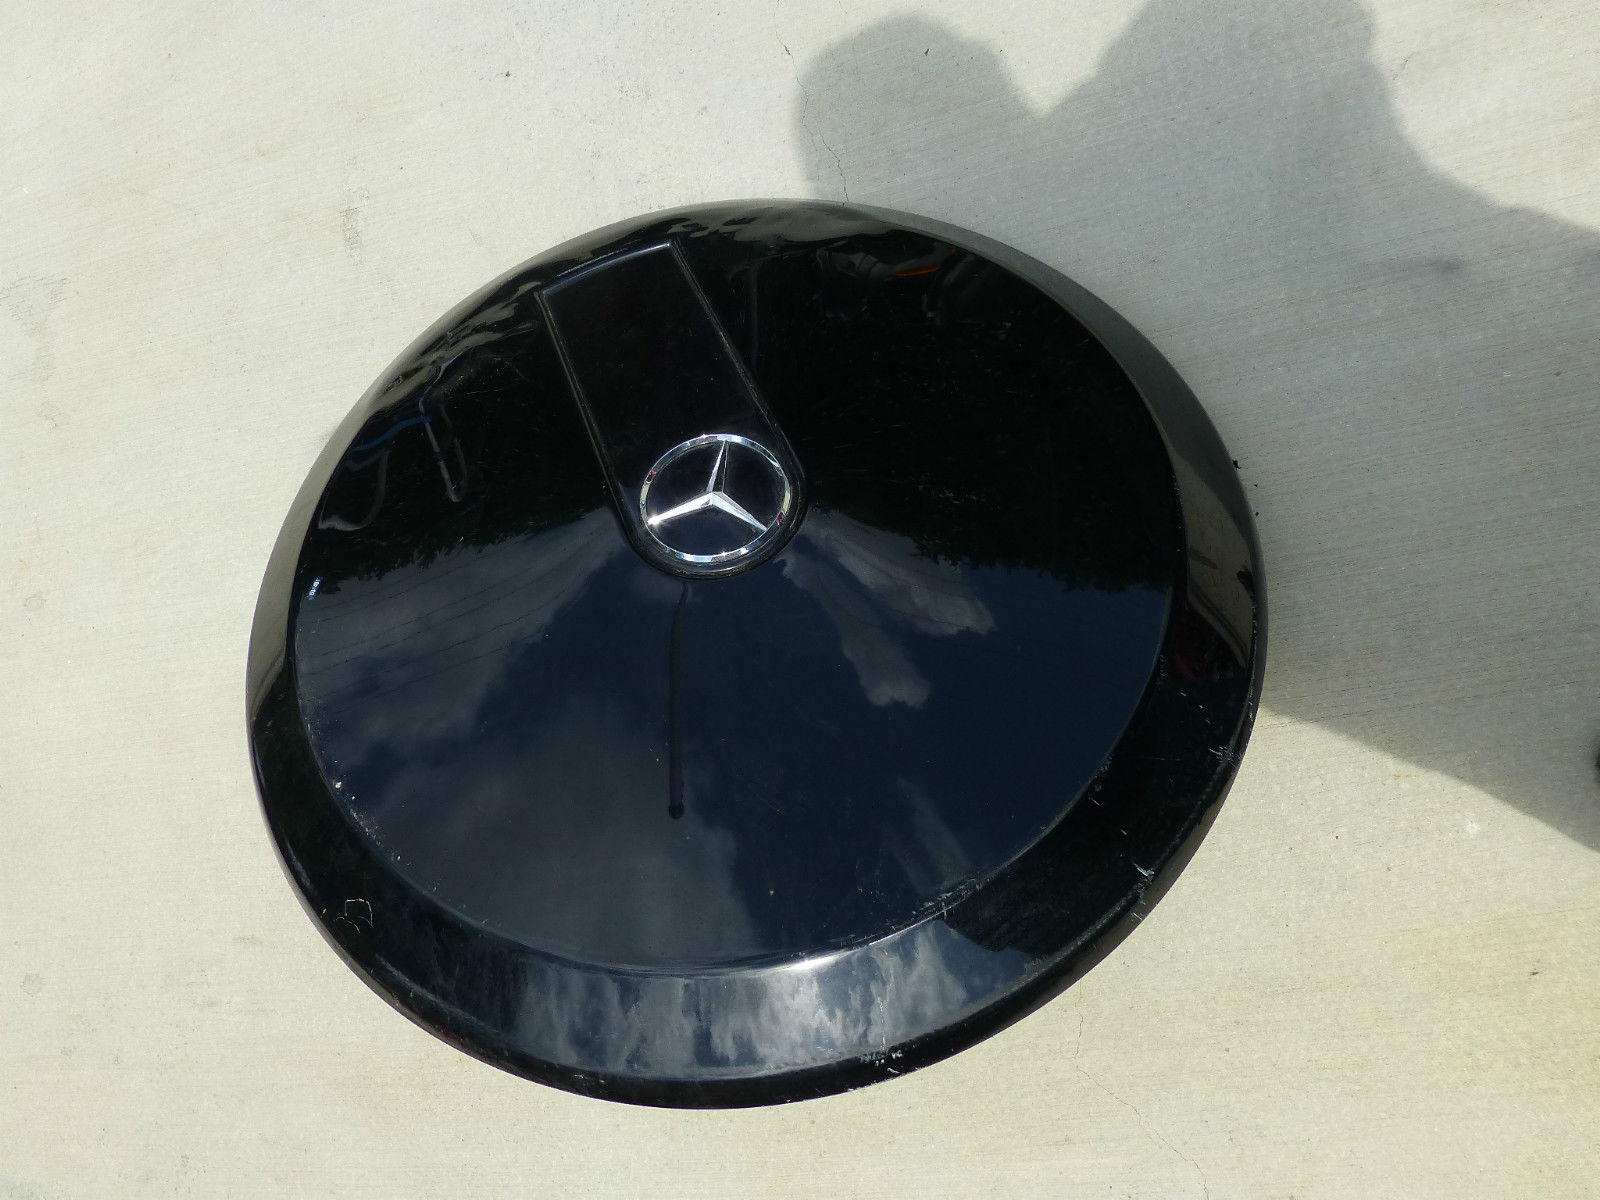 Mercedes Benz G Wagon W463 Spare Tire Carrier-Cap with badge plate 4638981409